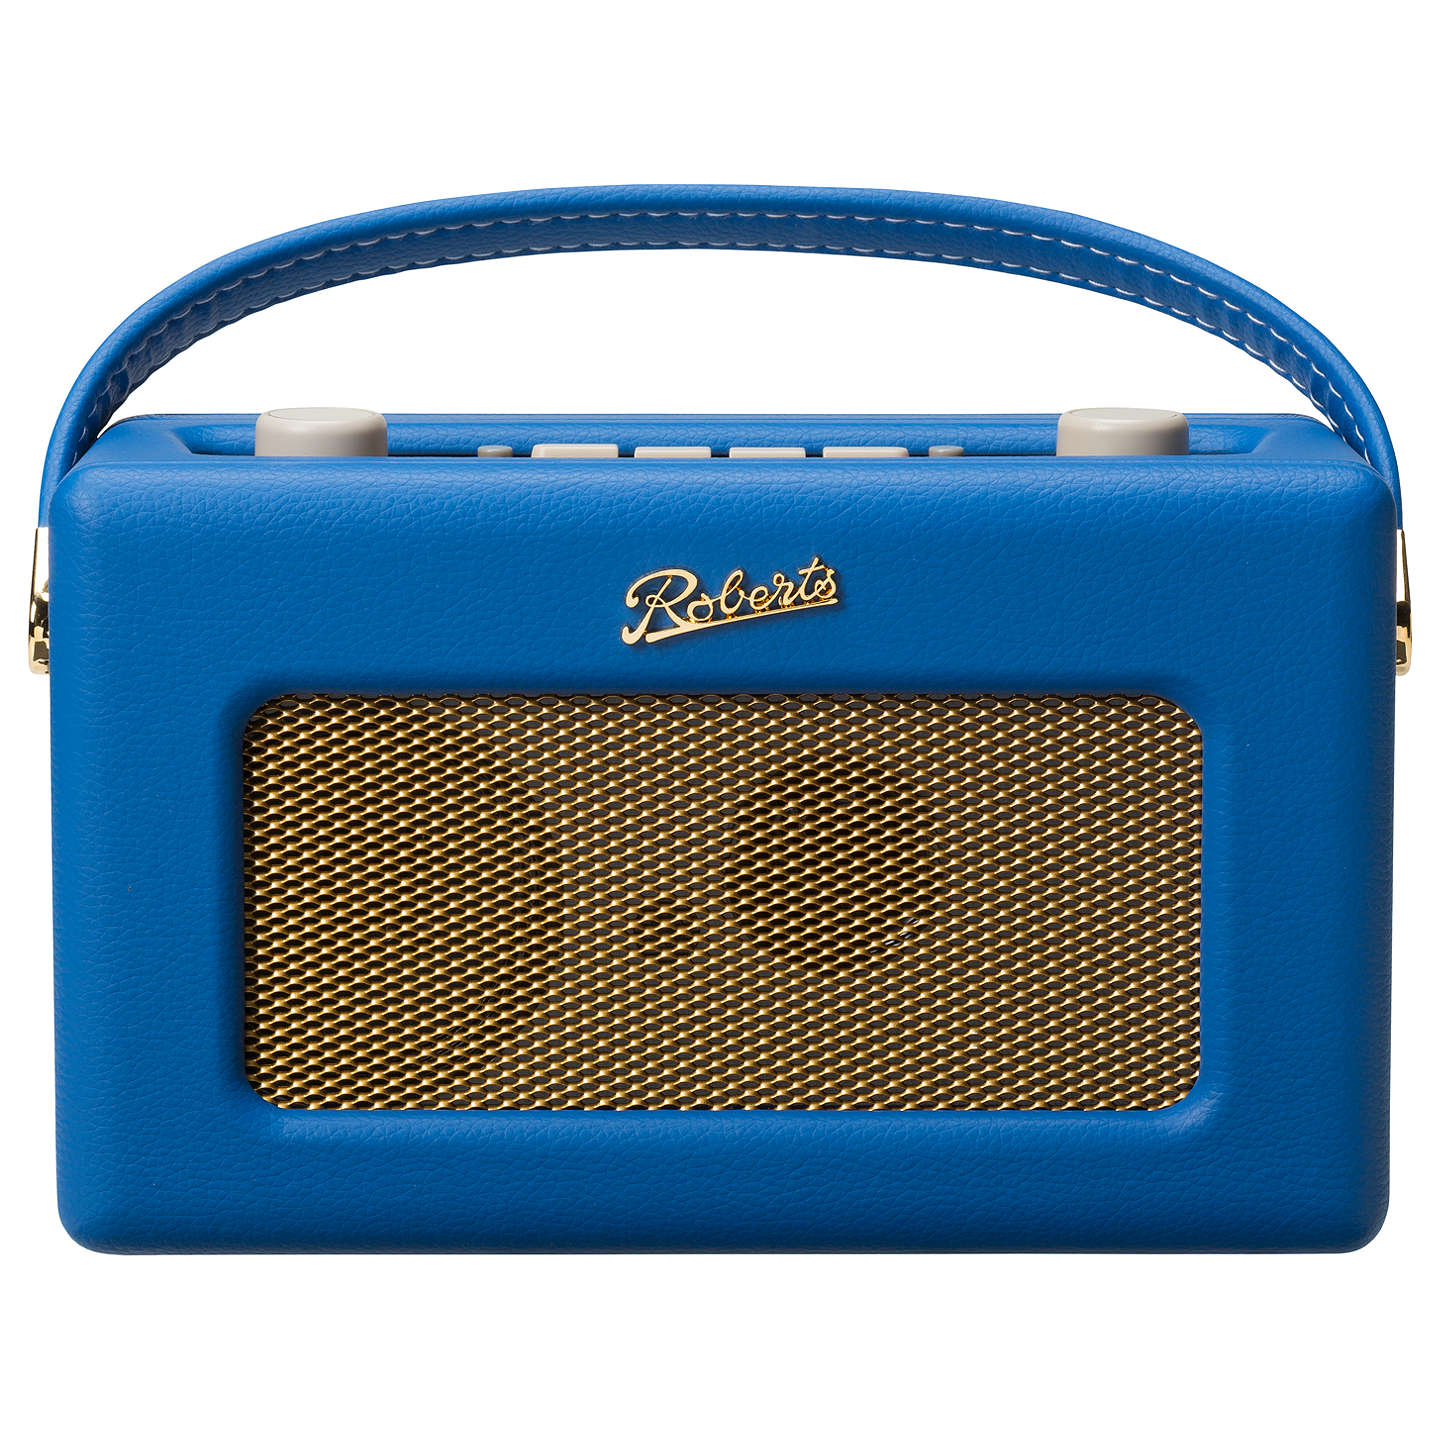 roberts revival rd60 dab digital radio at john lewis. Black Bedroom Furniture Sets. Home Design Ideas